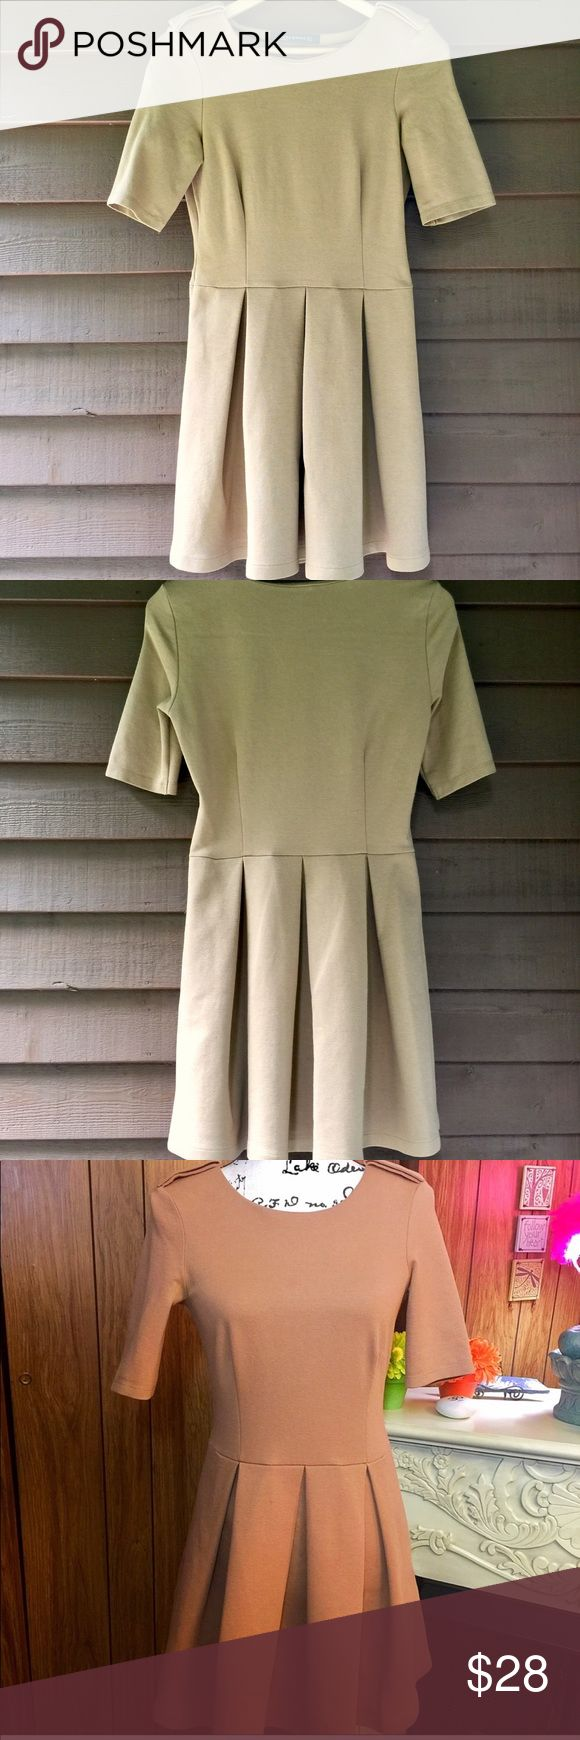 """Zara Woman Skater Dress Pre worn and besides for a tiny bit of pilling on the left sleeve as shown.. still in great condition ! Although short sleeved this is more of a fall/winter/springtime dress. It's a thicker material and has somewhat of a felt lining. It's a size small 23"""" in length. The bust is 34"""" and a 28"""" waist. The pleats are so very feminine. 👗 Zara Dresses"""